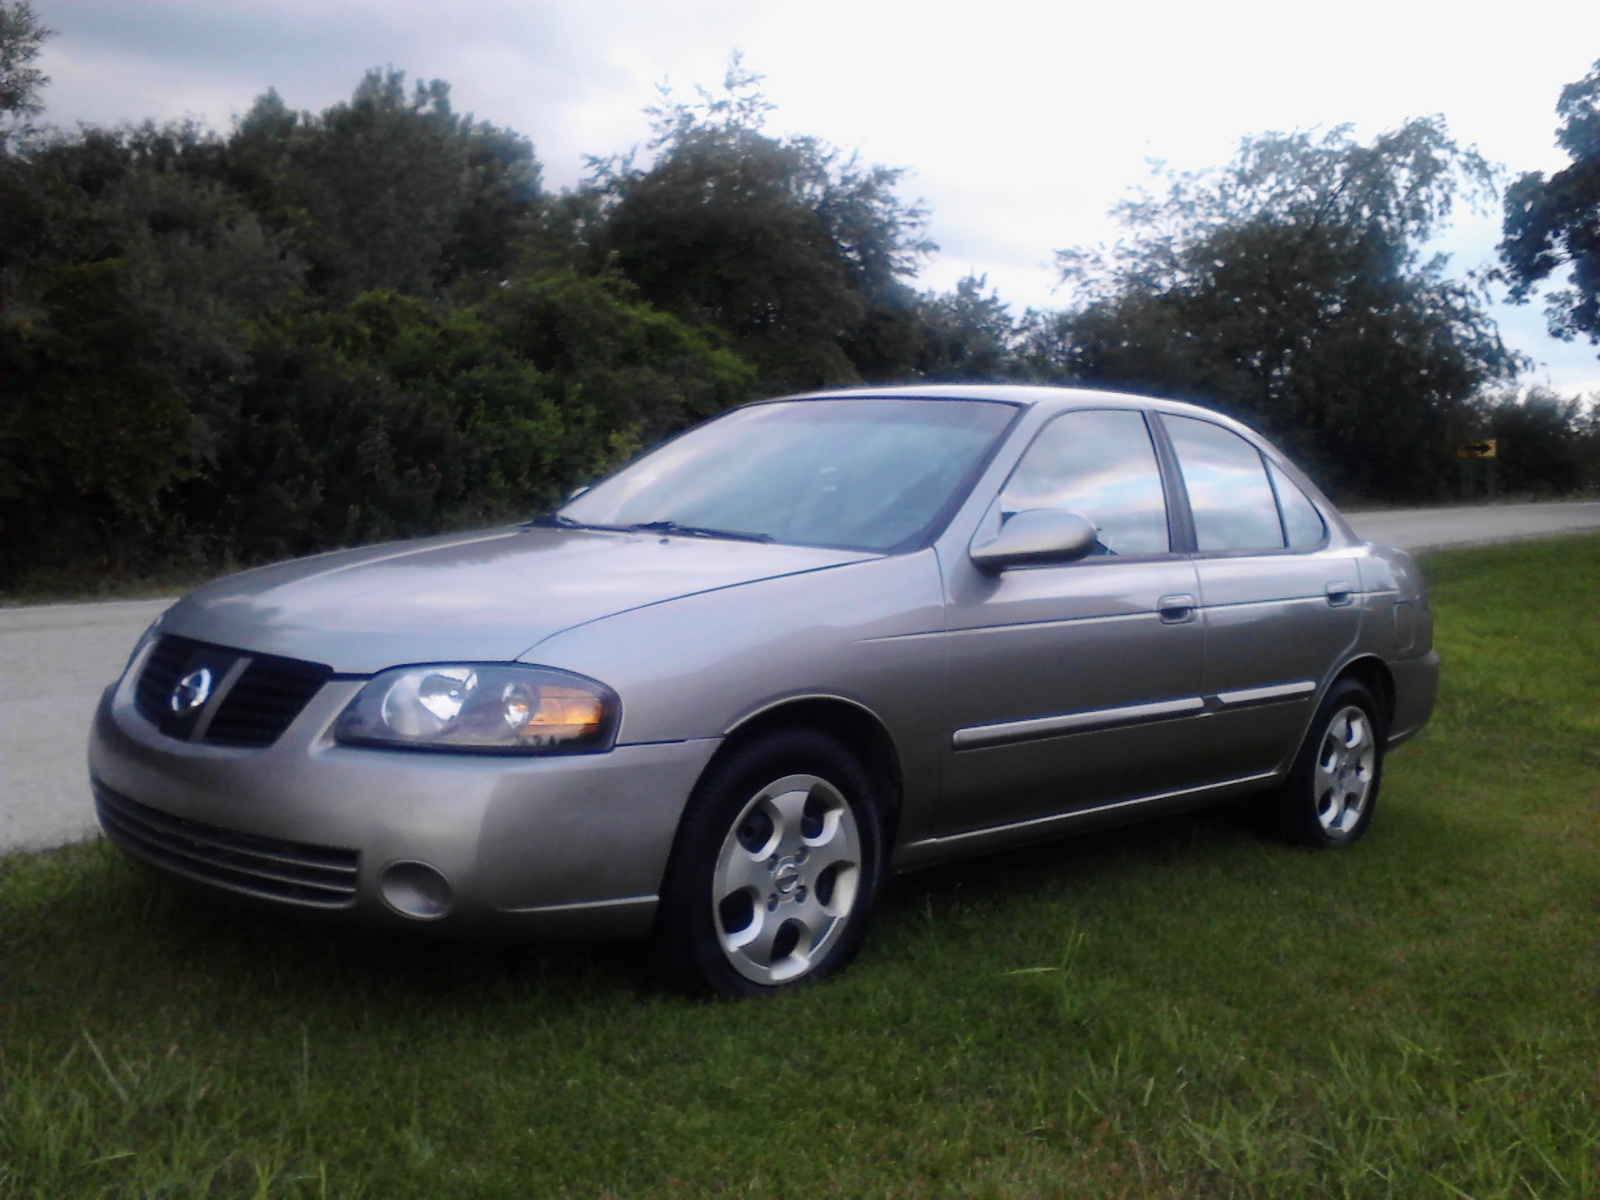 1997 Nissan Maxima Pictures C3042 pi36025833 besides 1997 Nissan Sentra Pictures C3046 together with 2004 Nissan Sentra Pictures C2992 pi36348301 also 2000 Nissan Pathfinder Pictures C3020 pi35845070 additionally 1996 Nissan 200SX Pictures C3047. on 1987 nissan pulsar interior